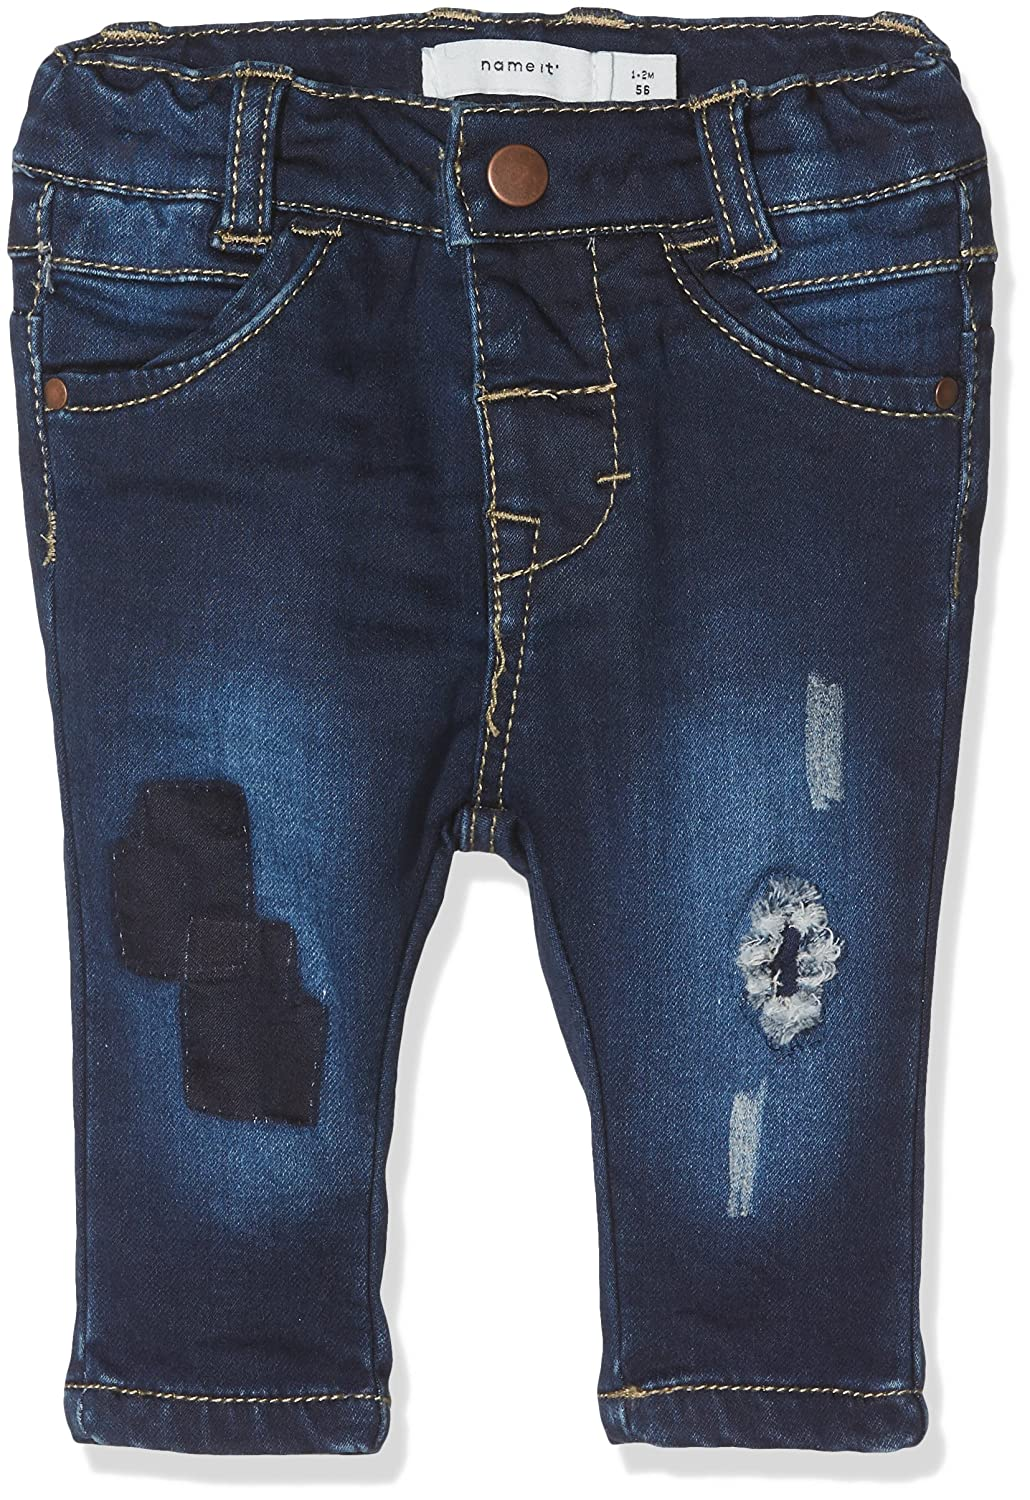 Name It Nitbawait Slim DNM Pant Bru F NB, Jeans Bébé Fille 13144525